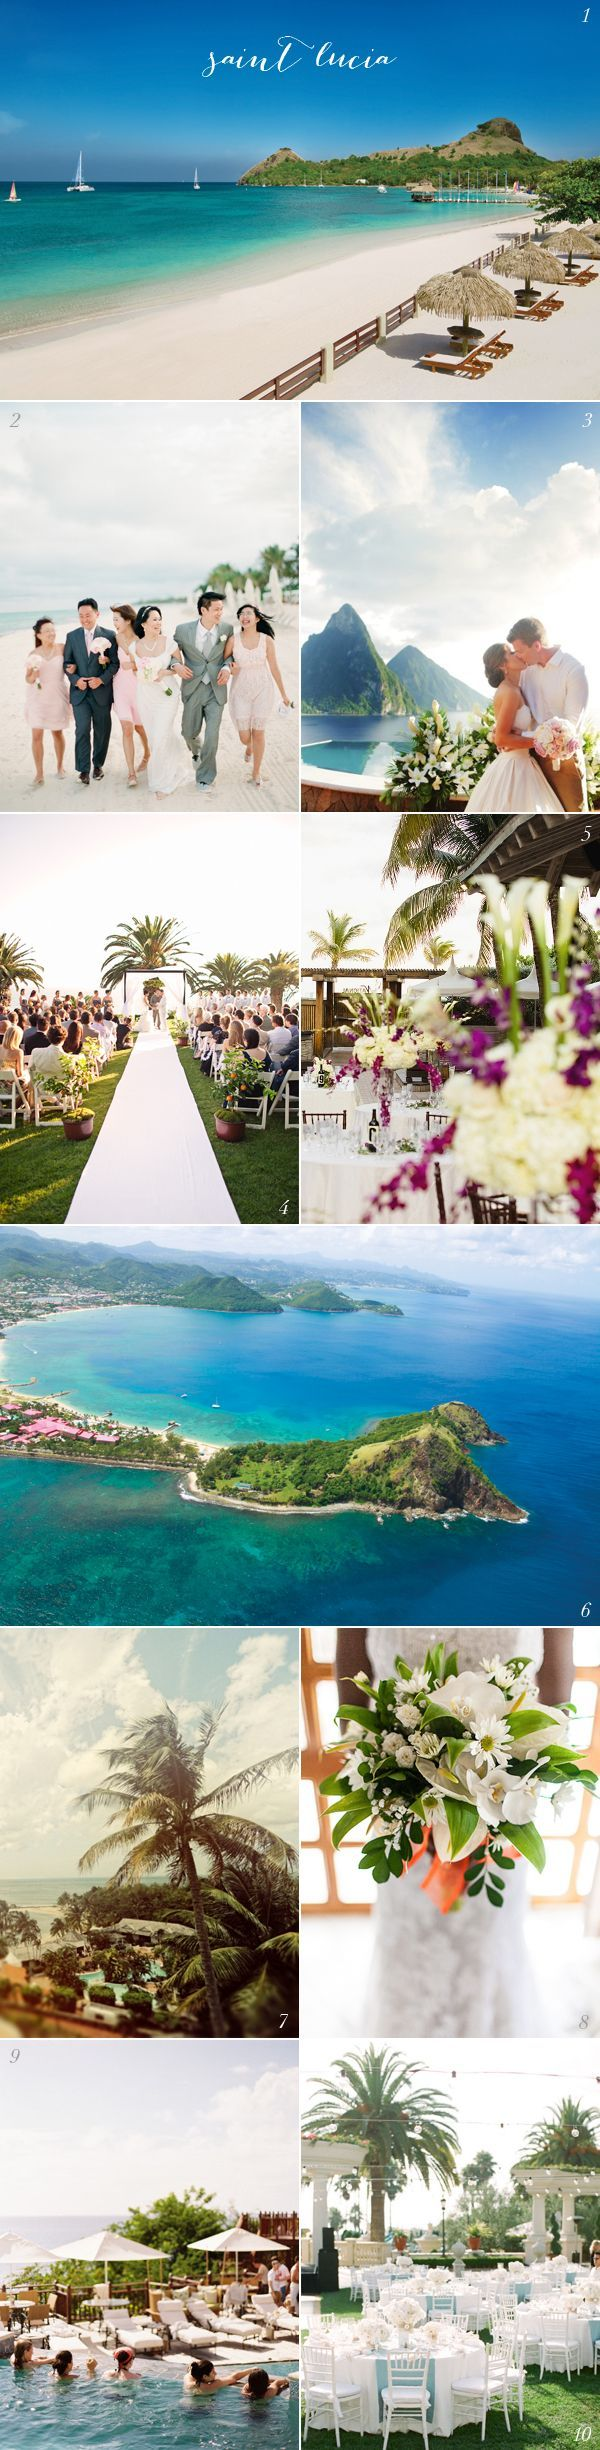 Your wedding bags for a grand getaway today s destination wedding - Current Crush St Lucia Destination Wedding